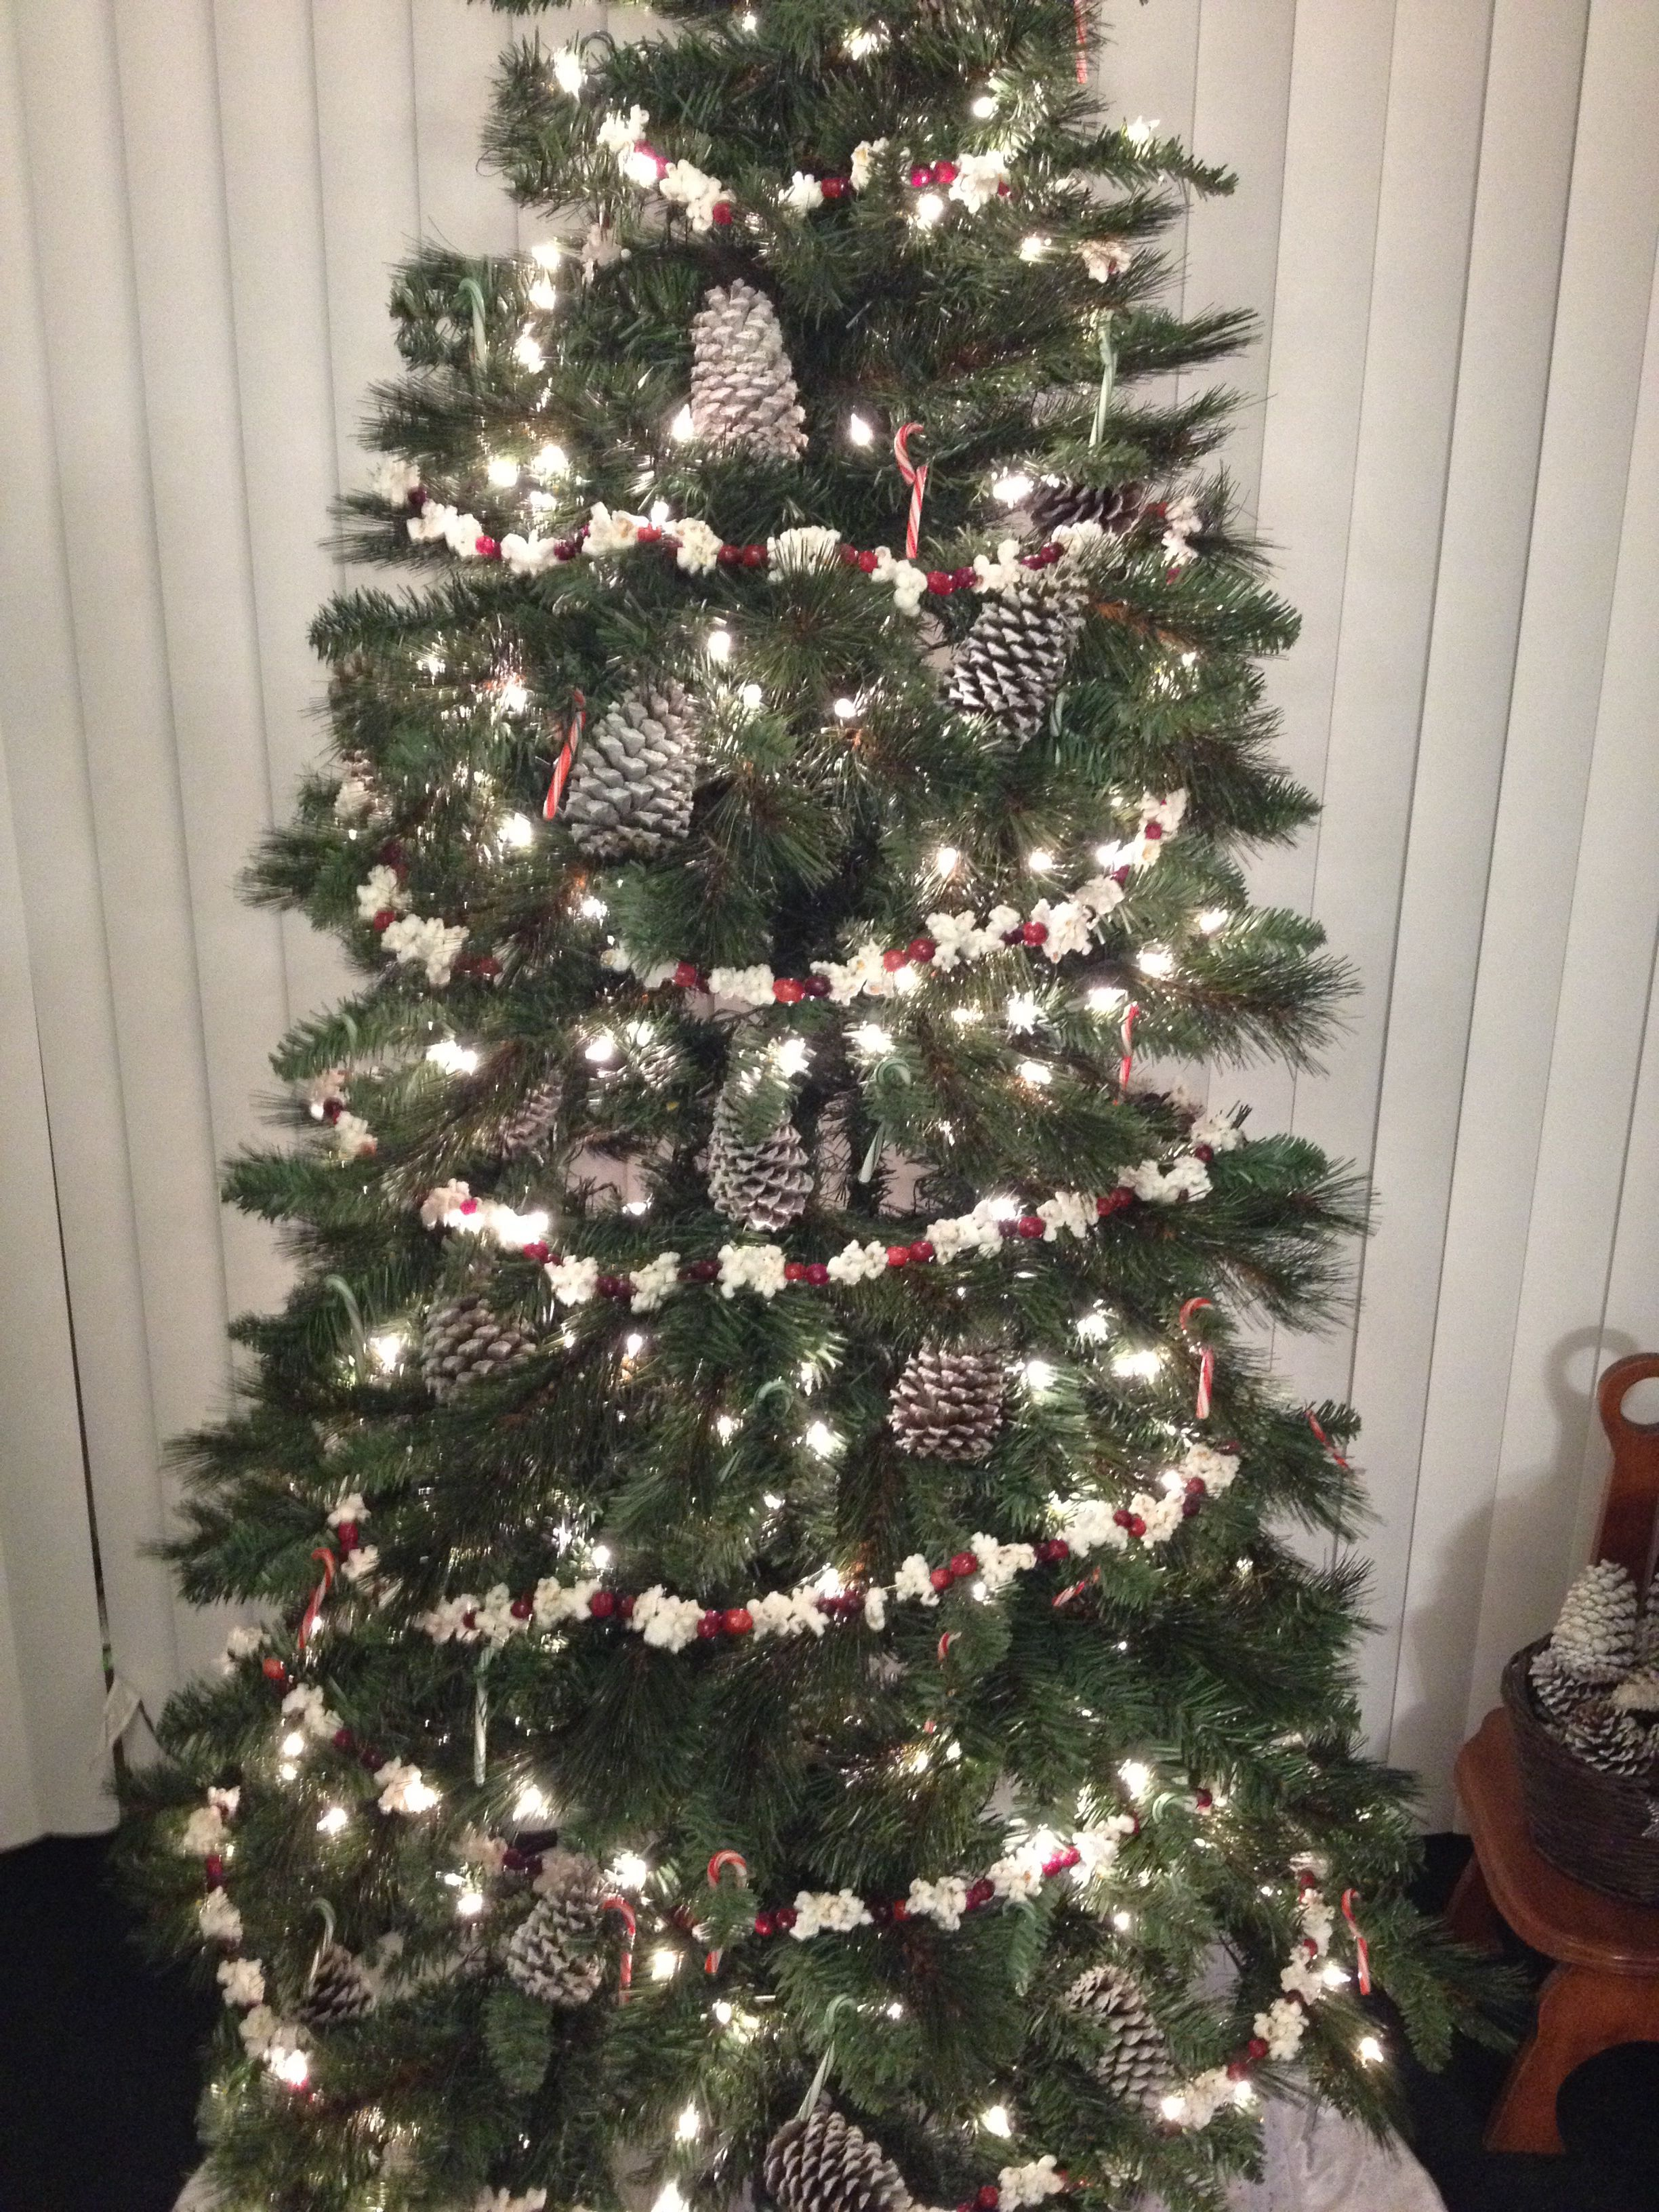 Our Tree All It Has On It Is Snow Covered Pinecones Popcorn And Cranberry Garland And Small Candy Ca Christmas Decor Diy Christmas Tree Garland Christmas Diy